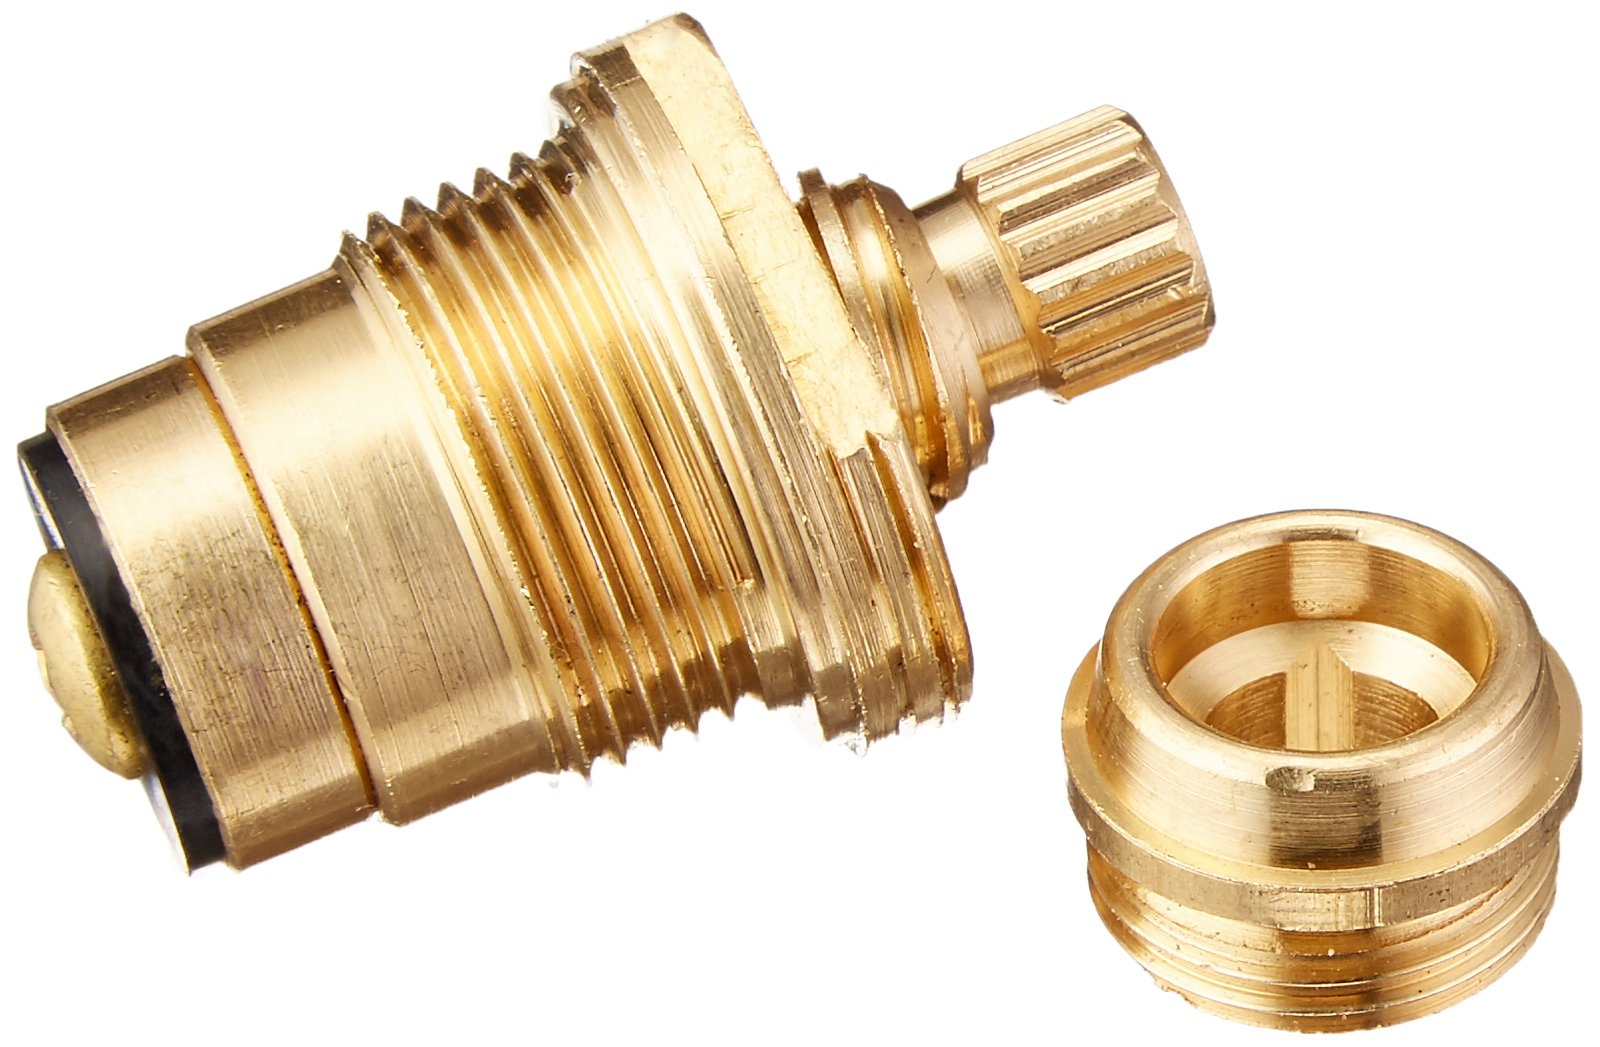 Danco 15340E Cold Stem for Gerber Sink and Lavatory Faucets